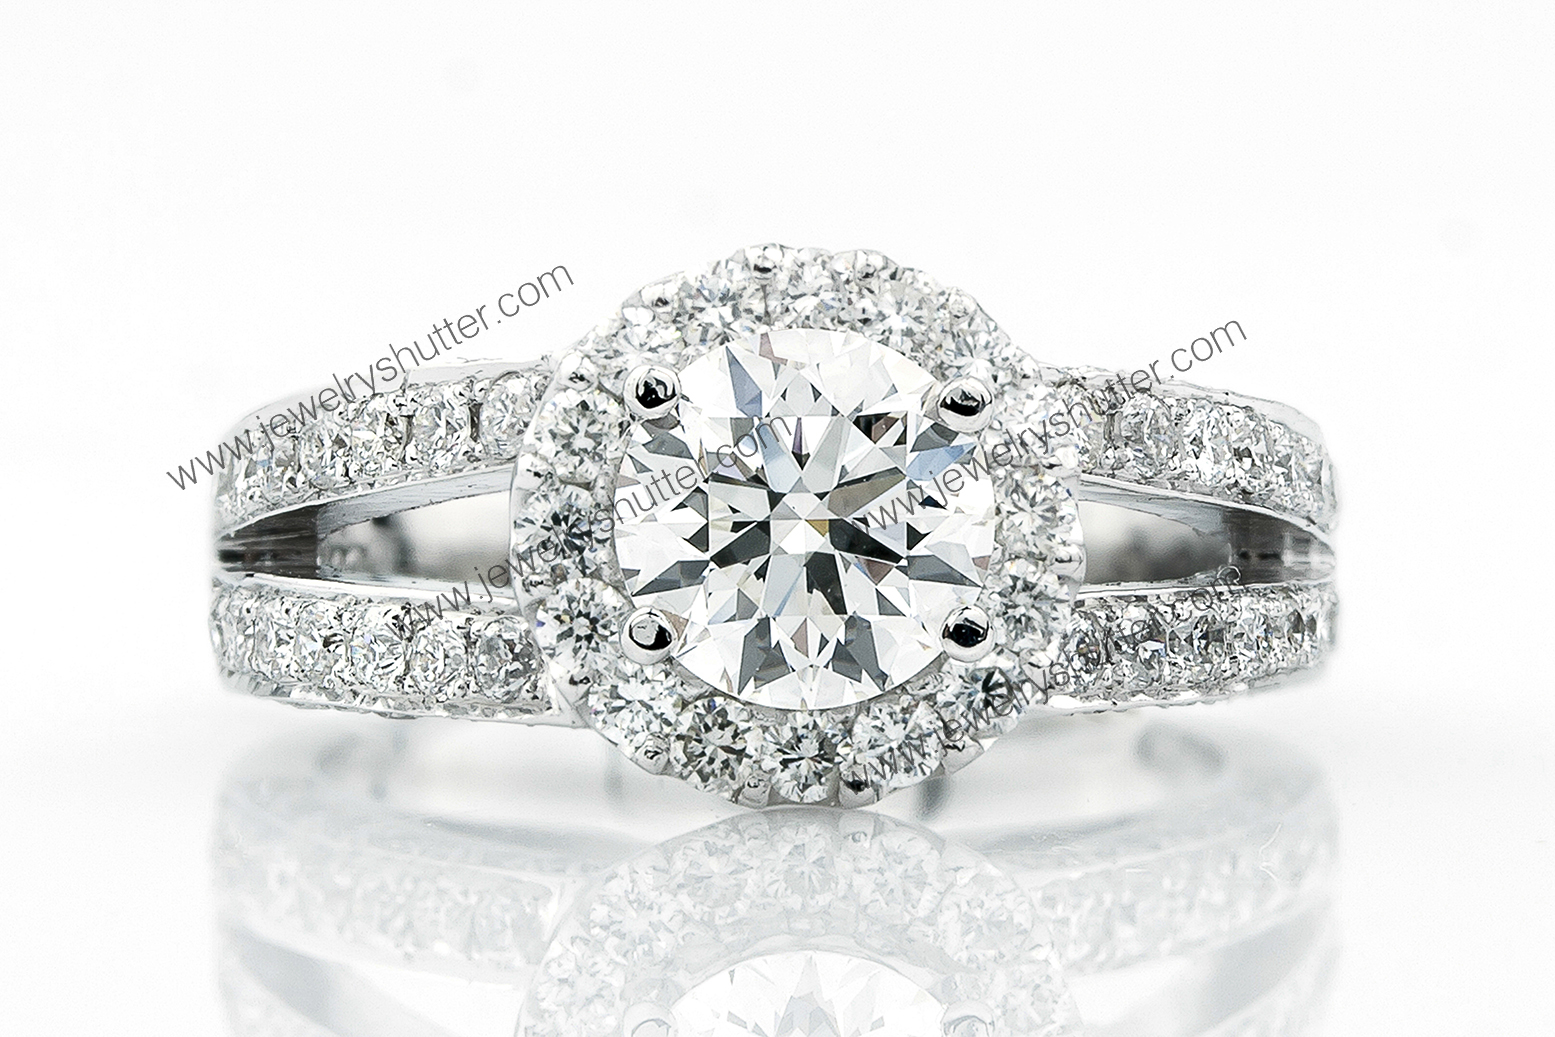 Diamond Ring on white background.